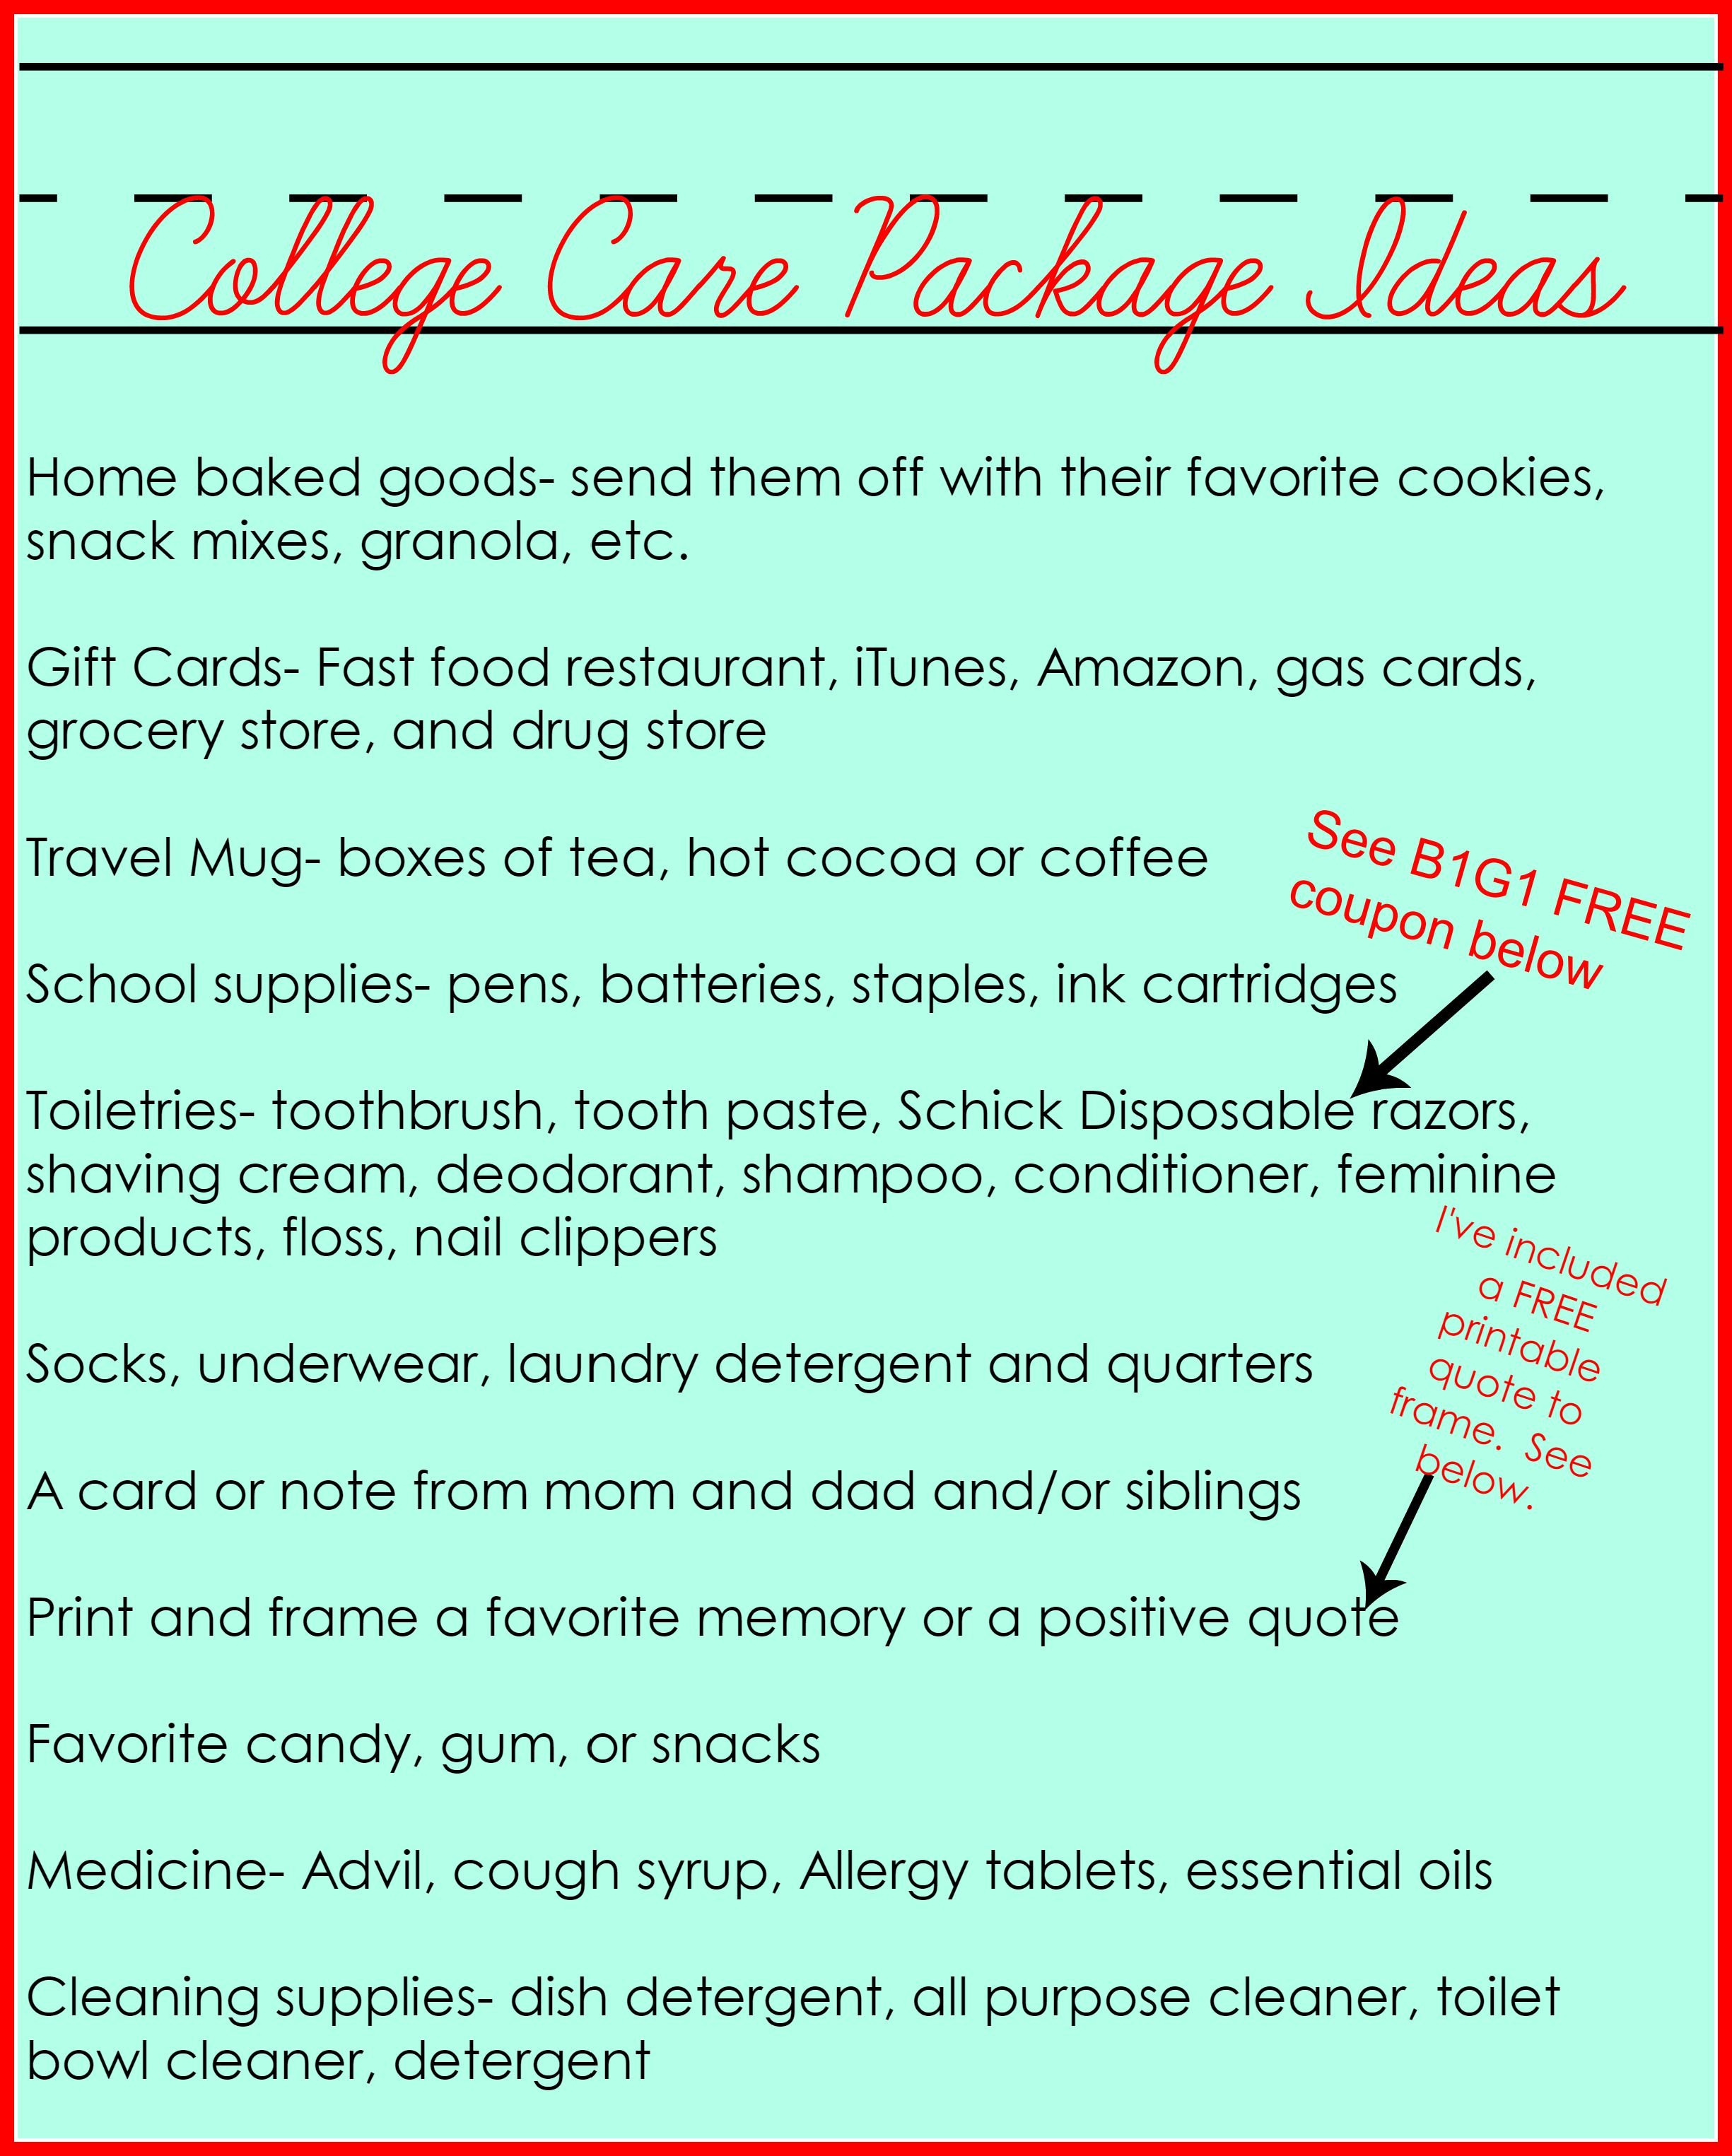 Second Chance to Dream: College Care Package Ideas